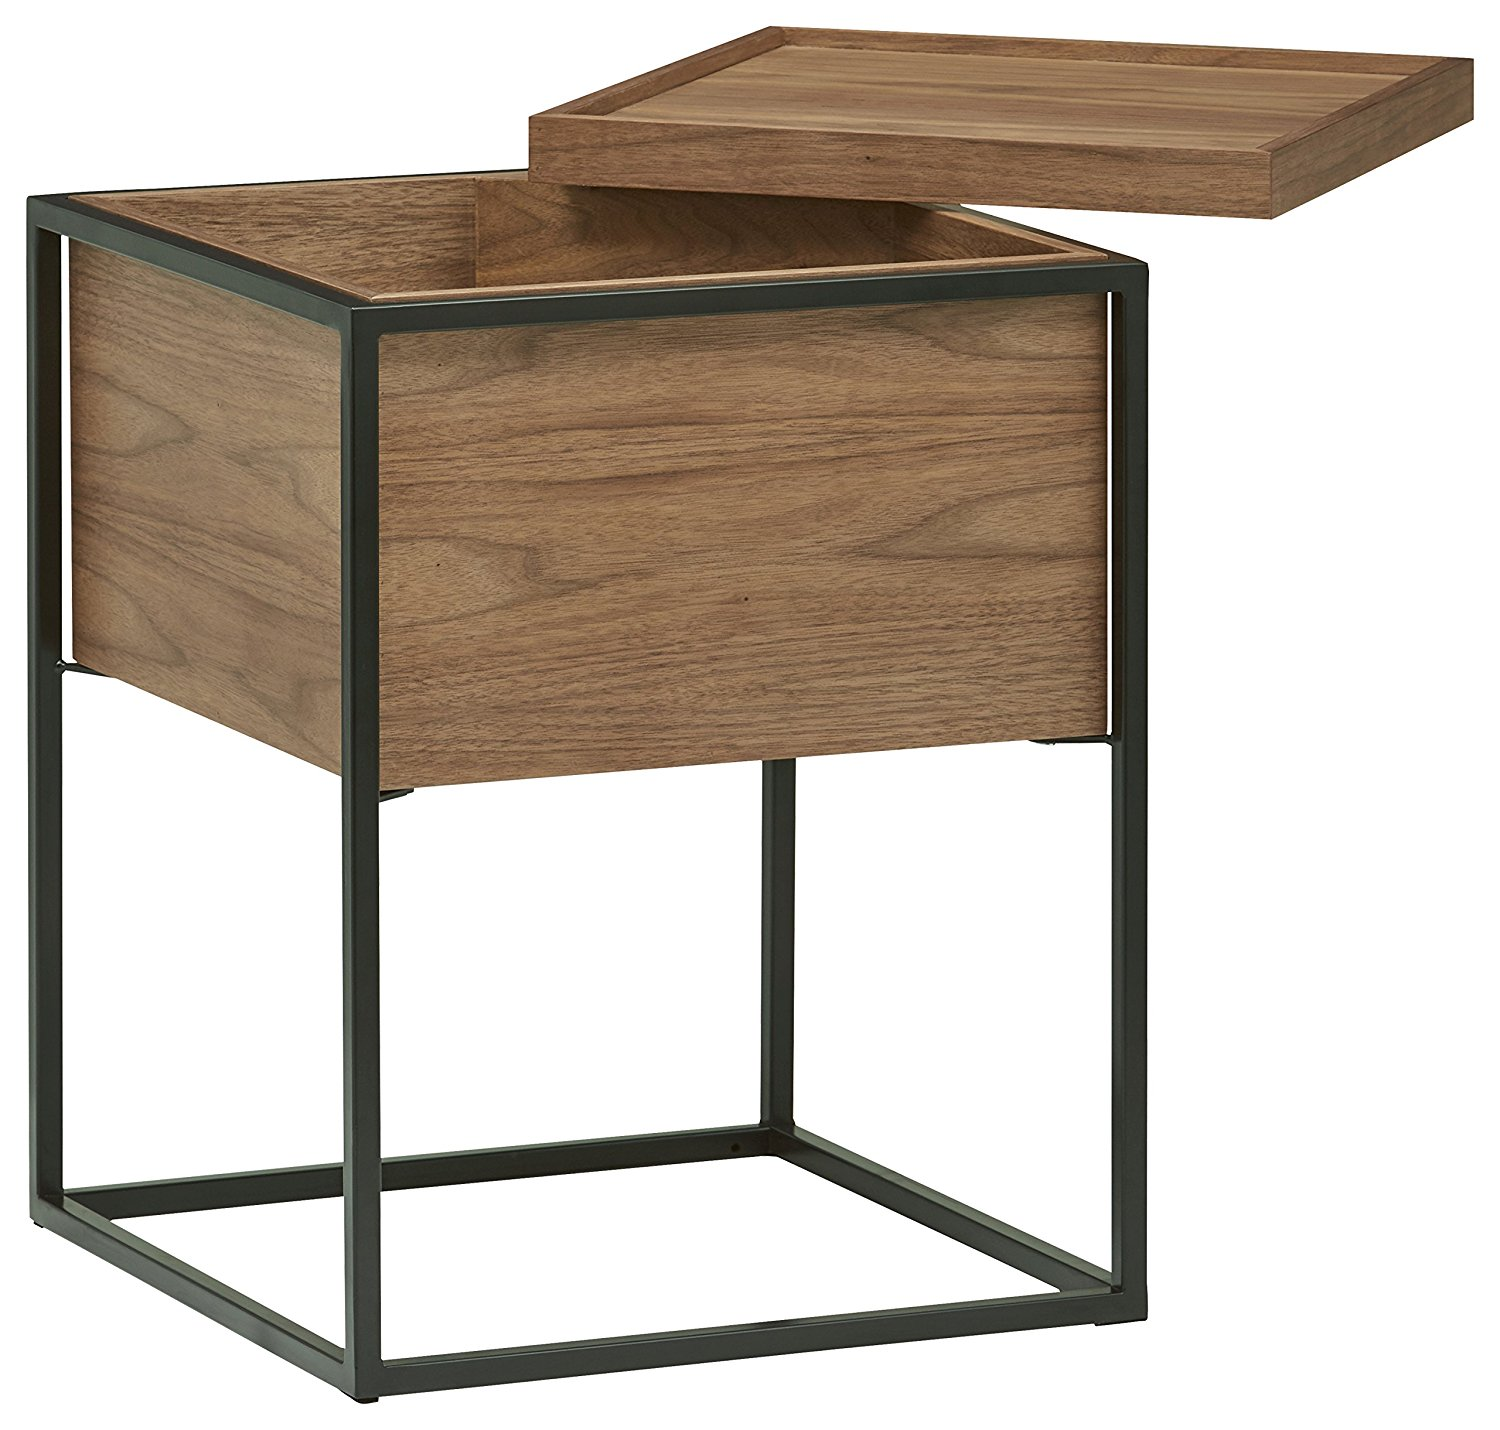 Wood And Metal Side Tables Rivet Axel Lid Storage Wood And Metal Side Table Best